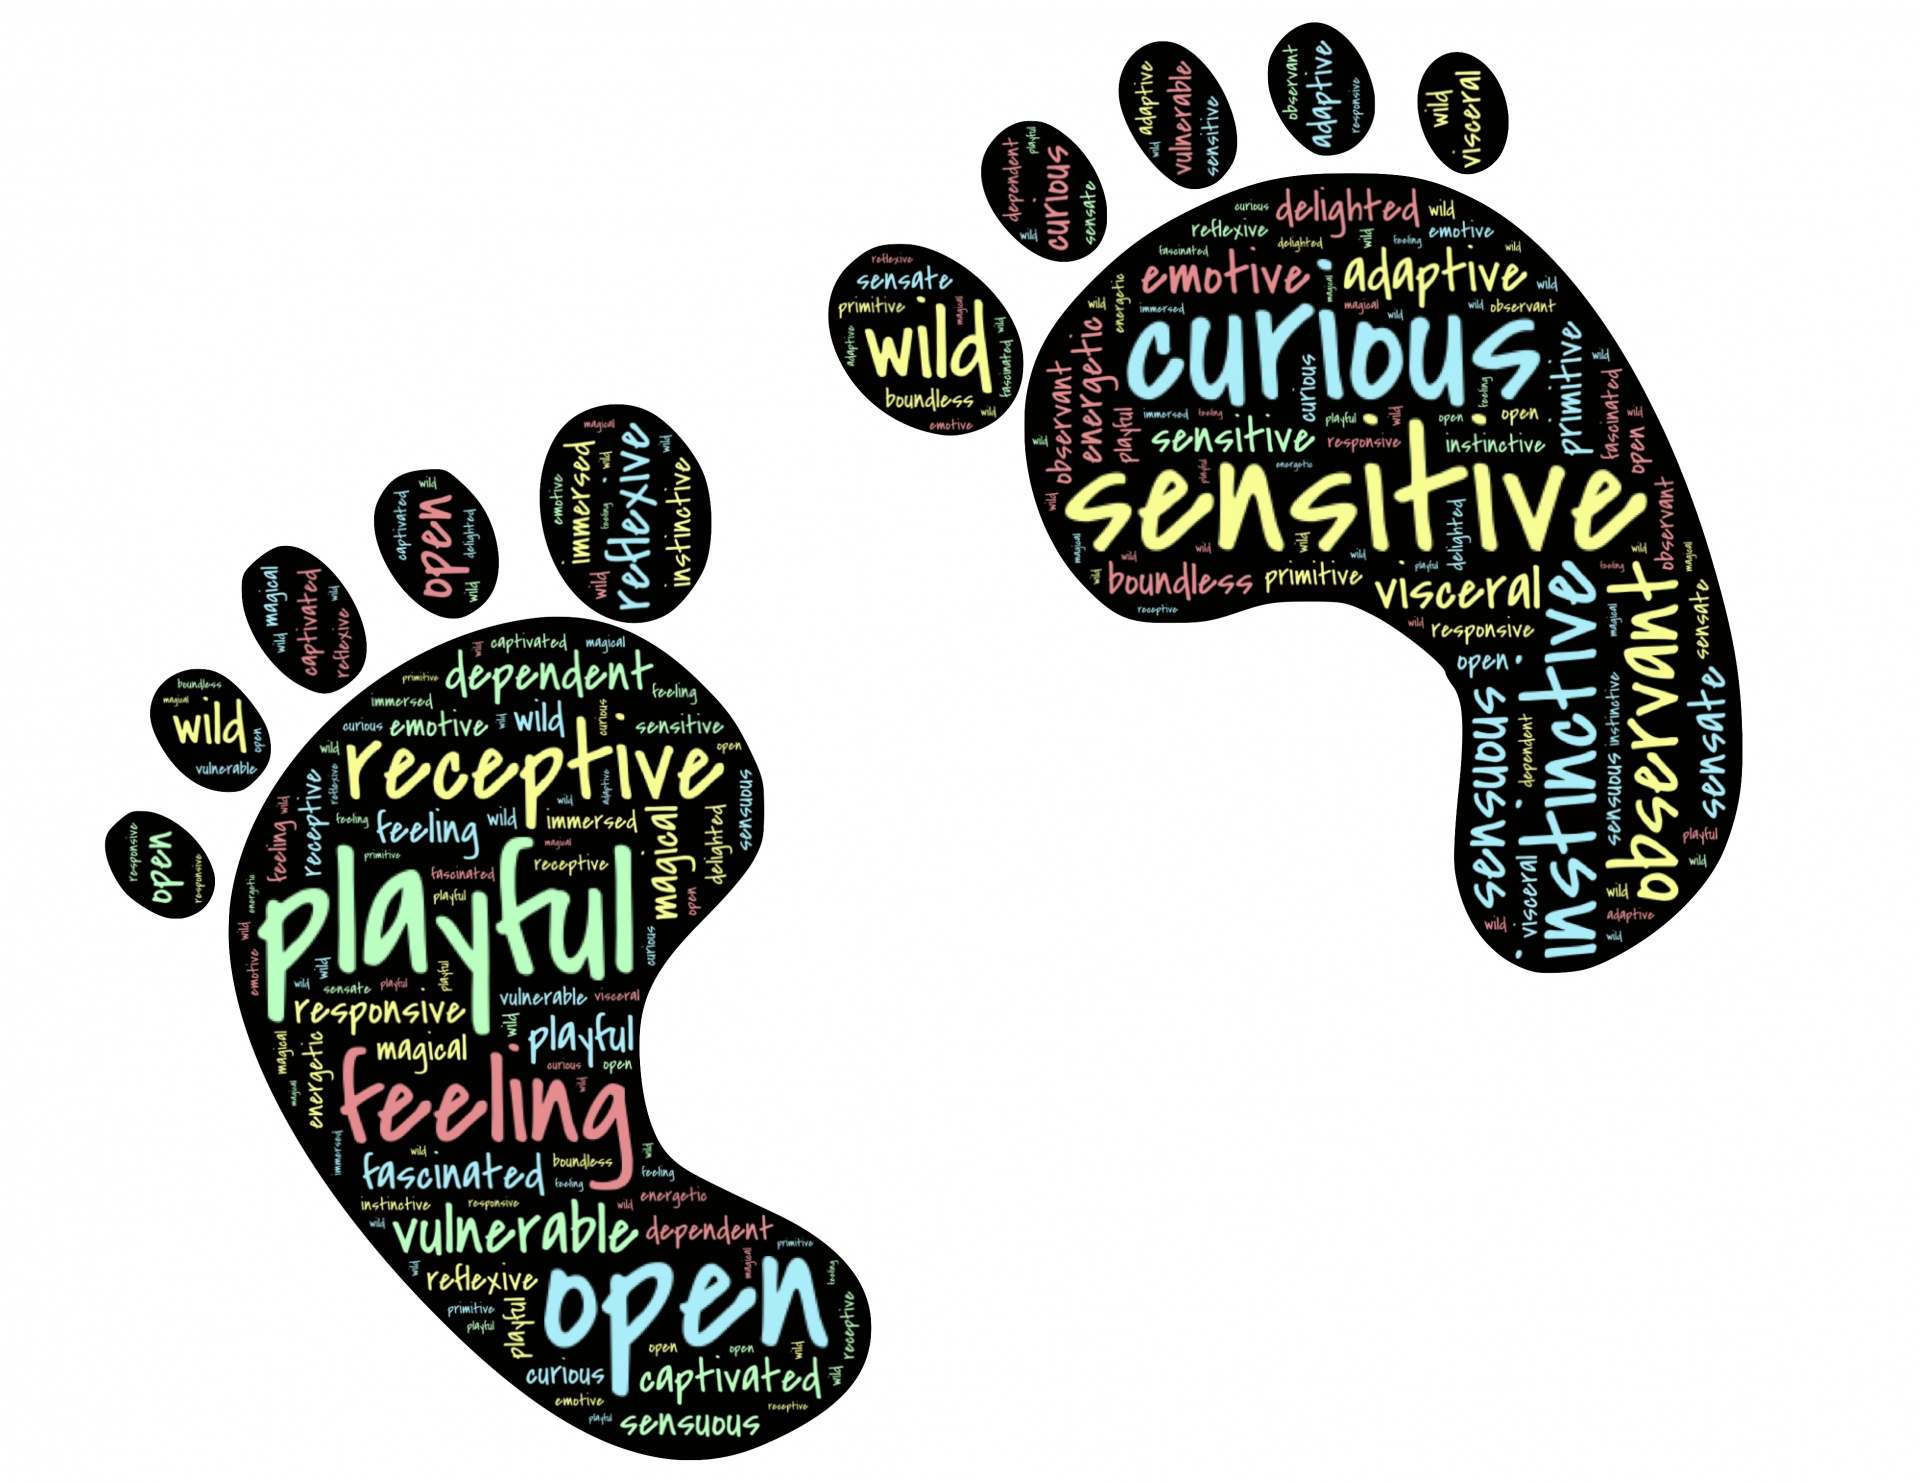 Teaching Digital Footprint Common Sense